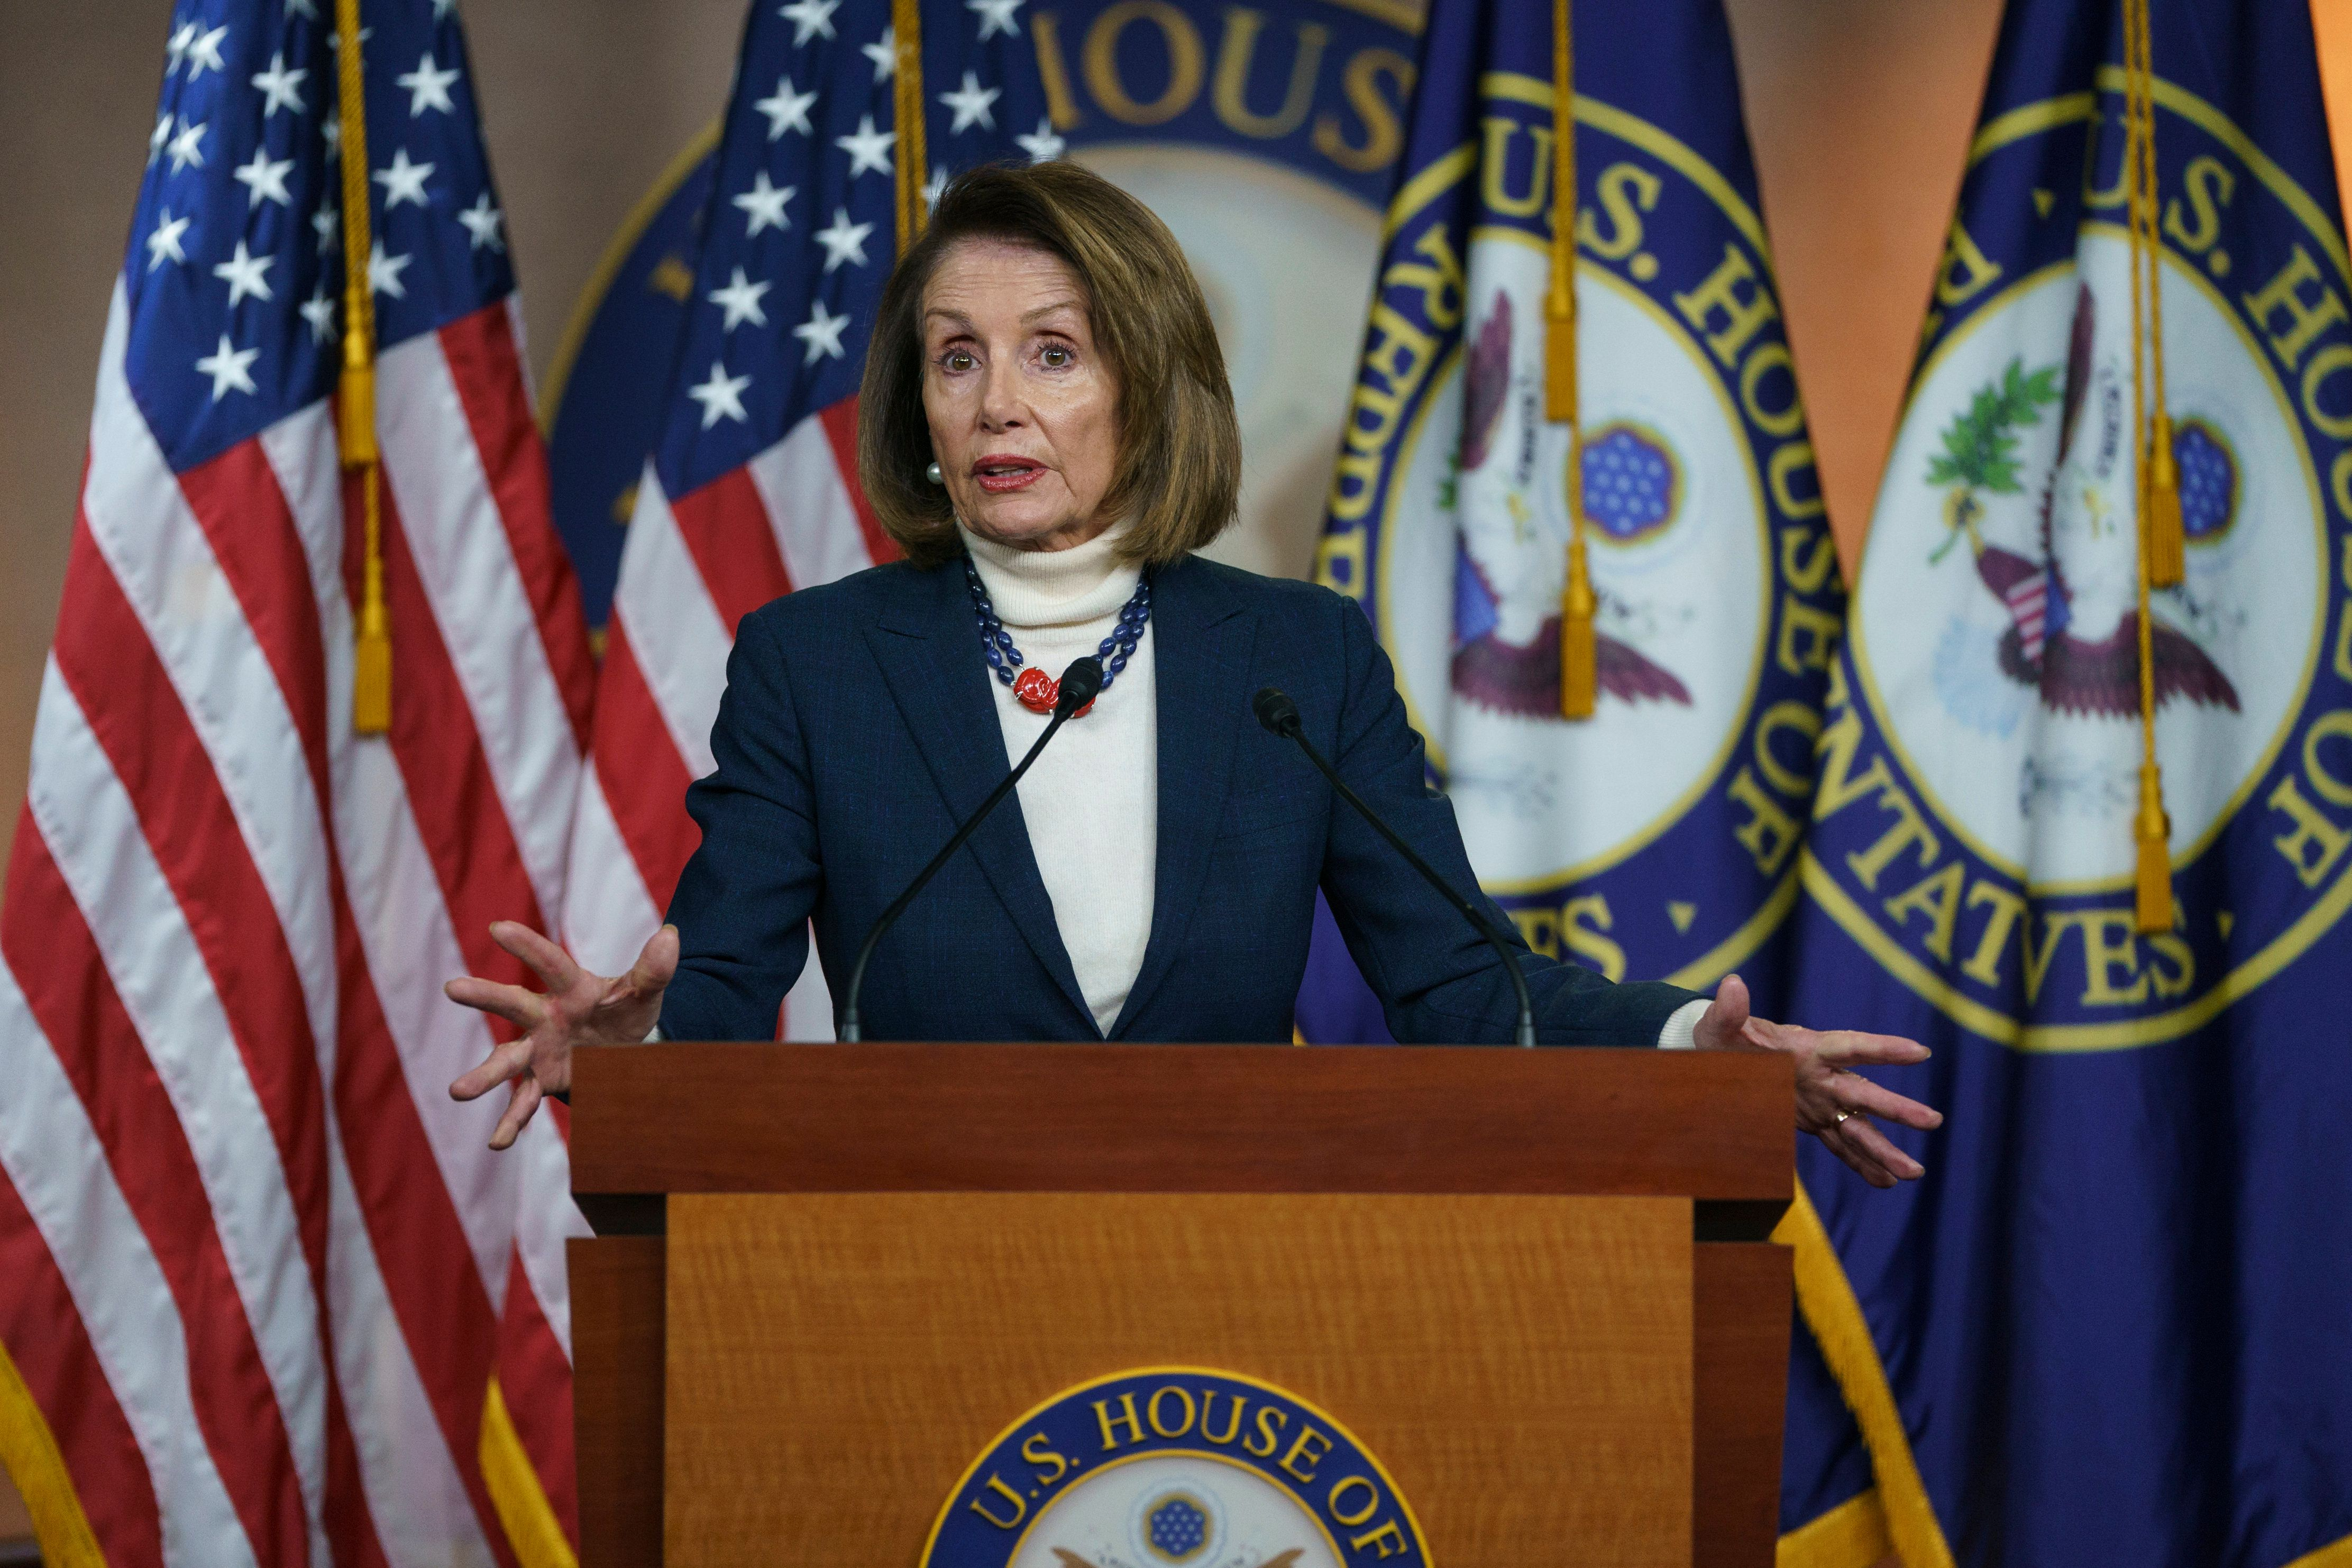 House Speaker Nancy Pelosi of Calif., speaks during a news conference on Capitol Hill in Washington, Thursday, Jan. 17, 2019. (AP Photo/Carolyn Kaster)